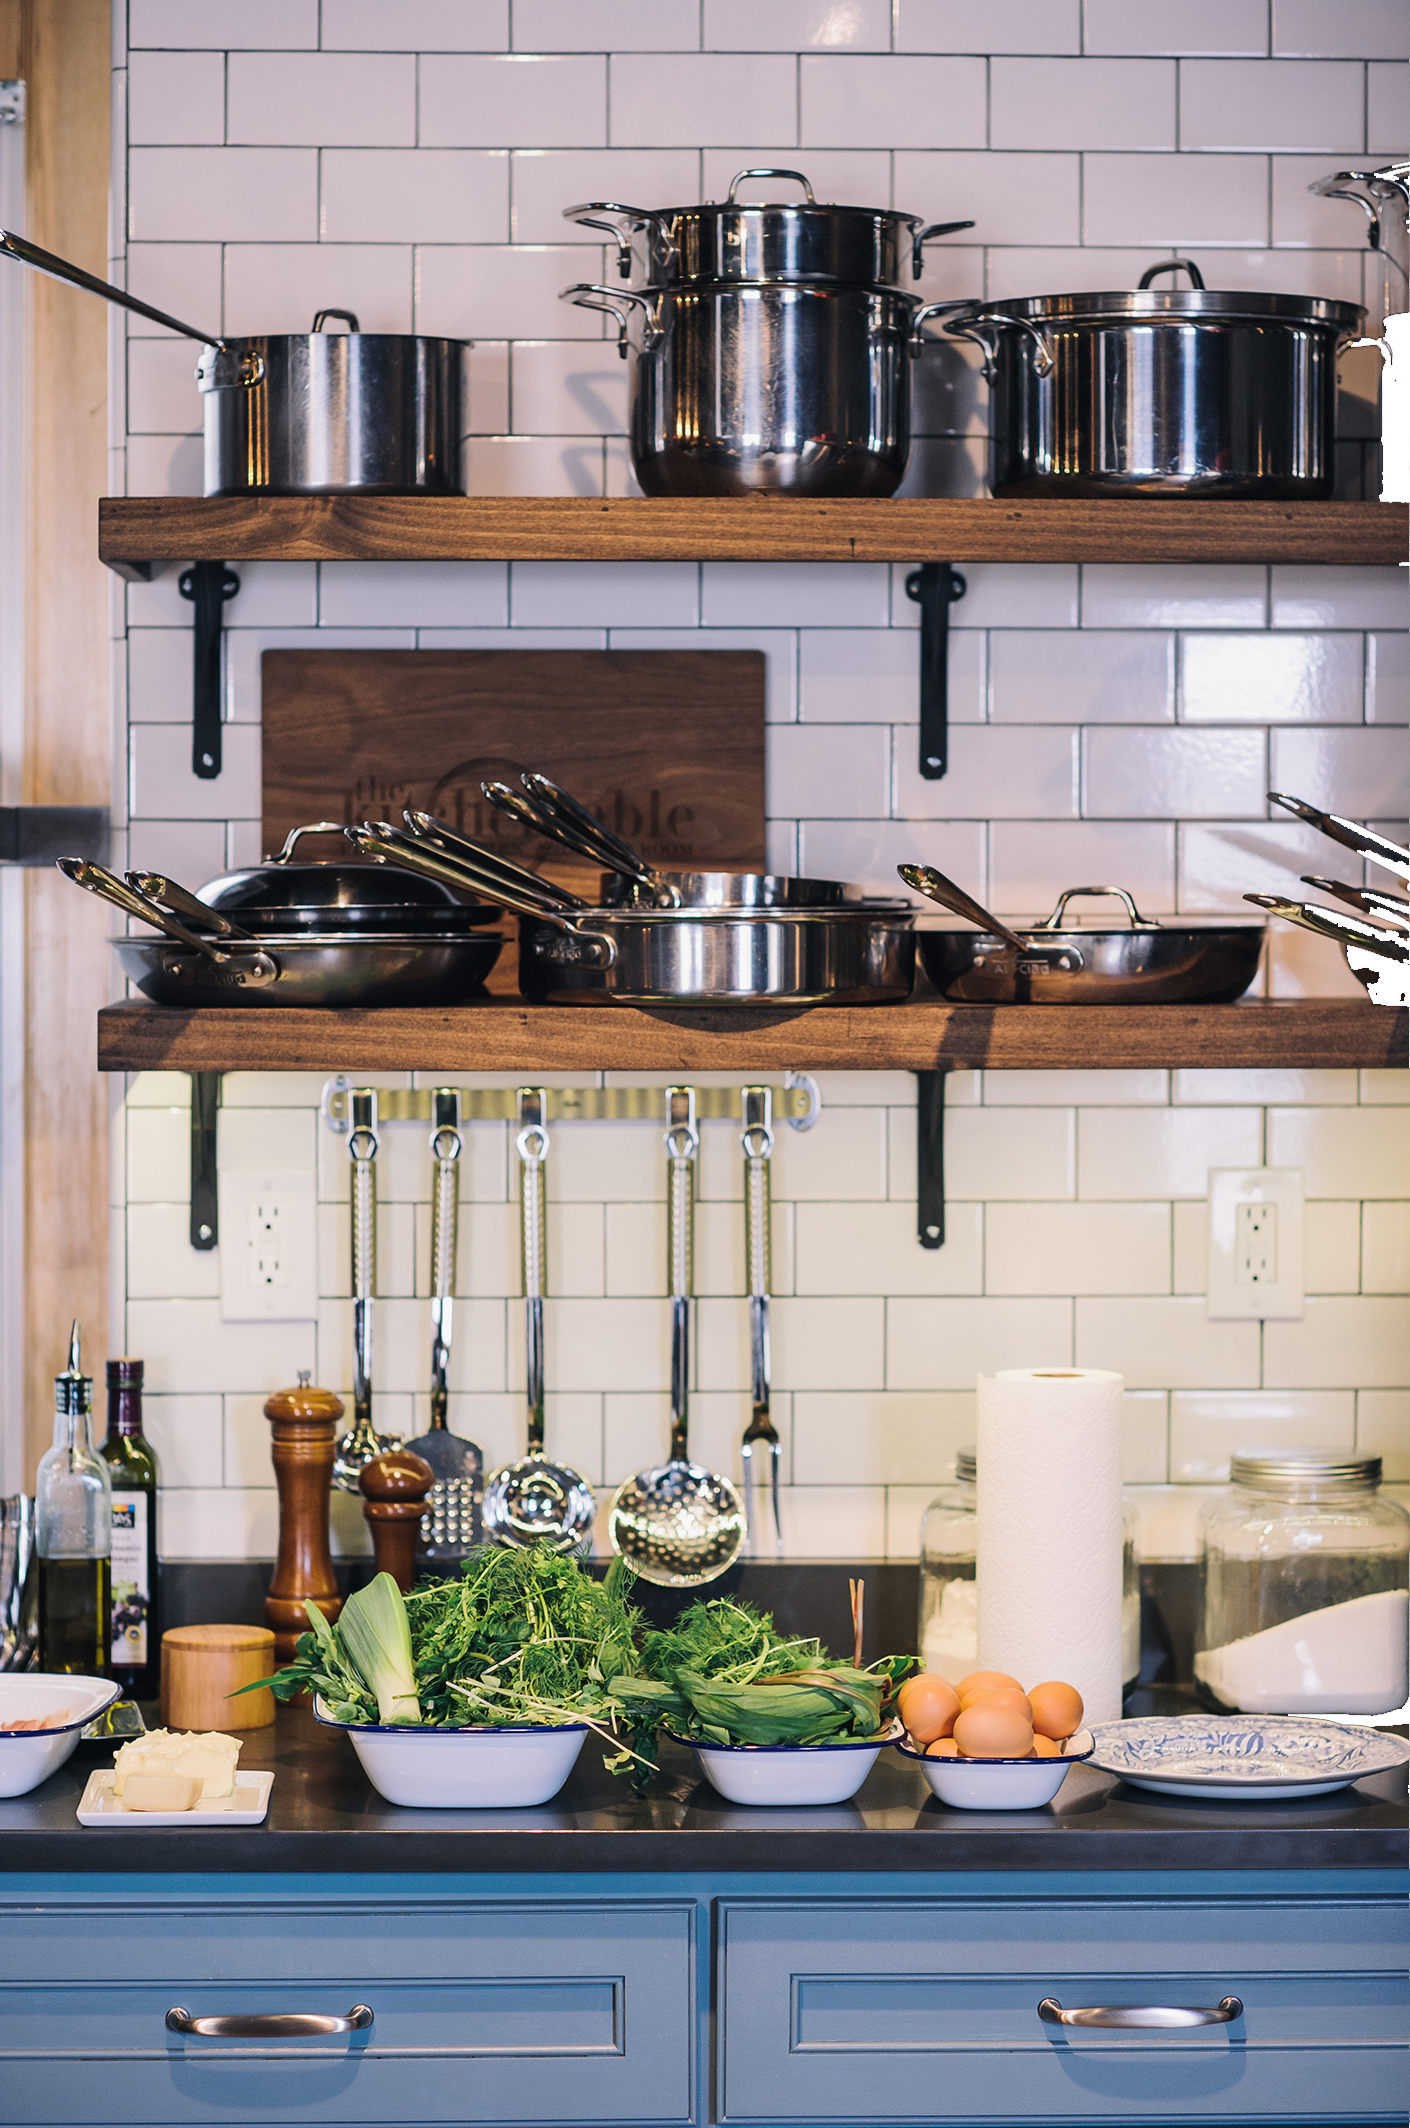 The Kitchen - Pull up a stool in our custom designed, fully equipped open chefs kitchen. Features include seating for 9, induction technology, and kitchen equipment by Le Creuset, All-Clad, Vitamix, Kitchenaid, Wüsthof and Nespresso.